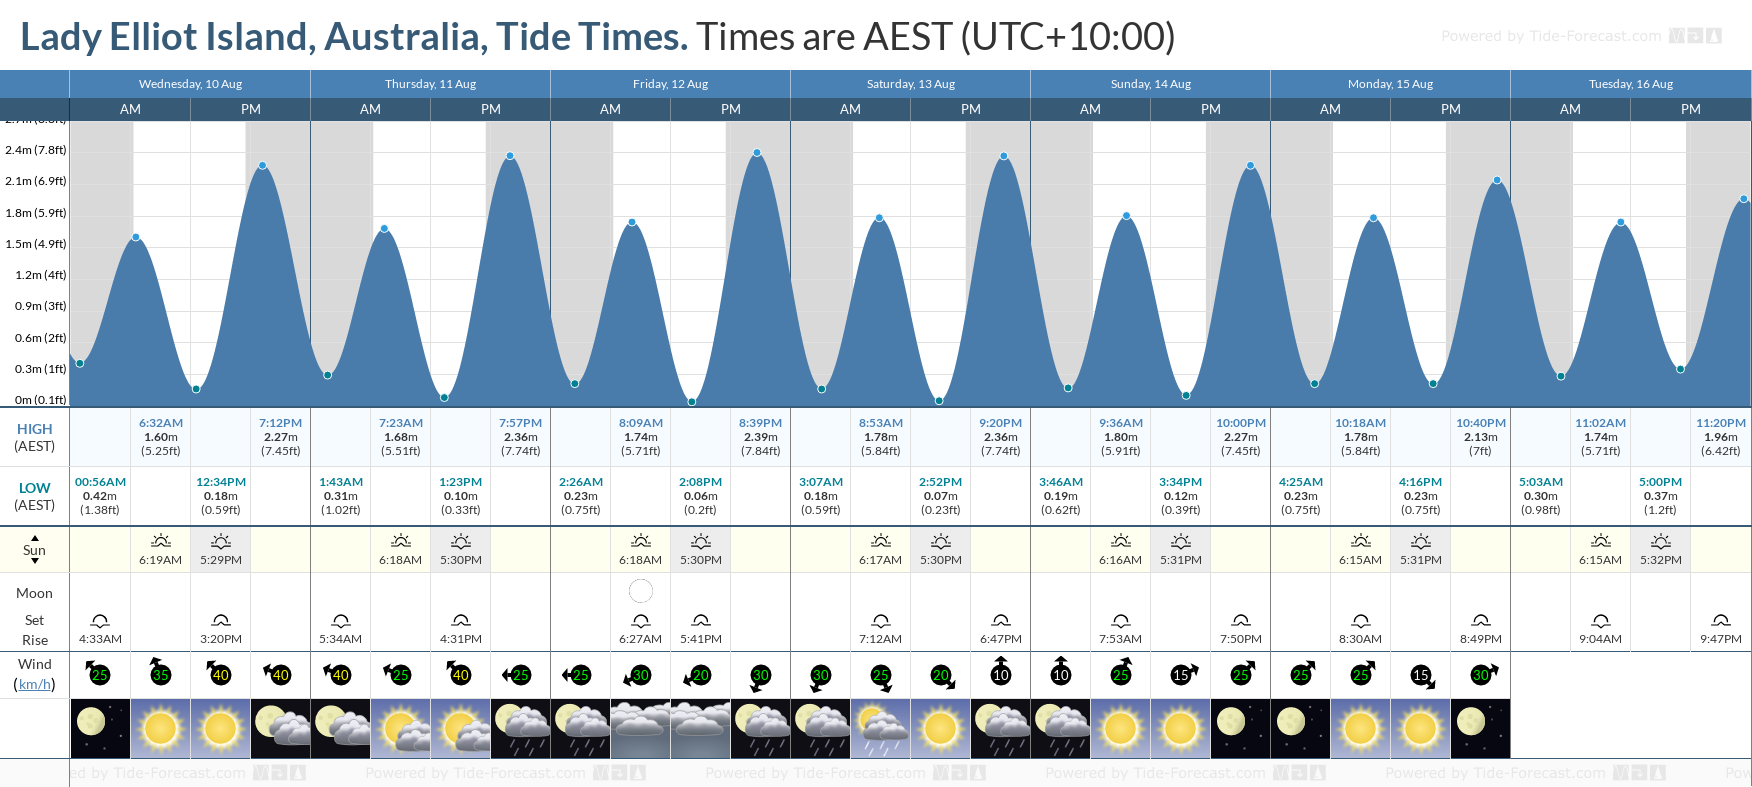 Lady Elliot Island, Australia Tide Chart including high and low tide tide times for the next 7 days